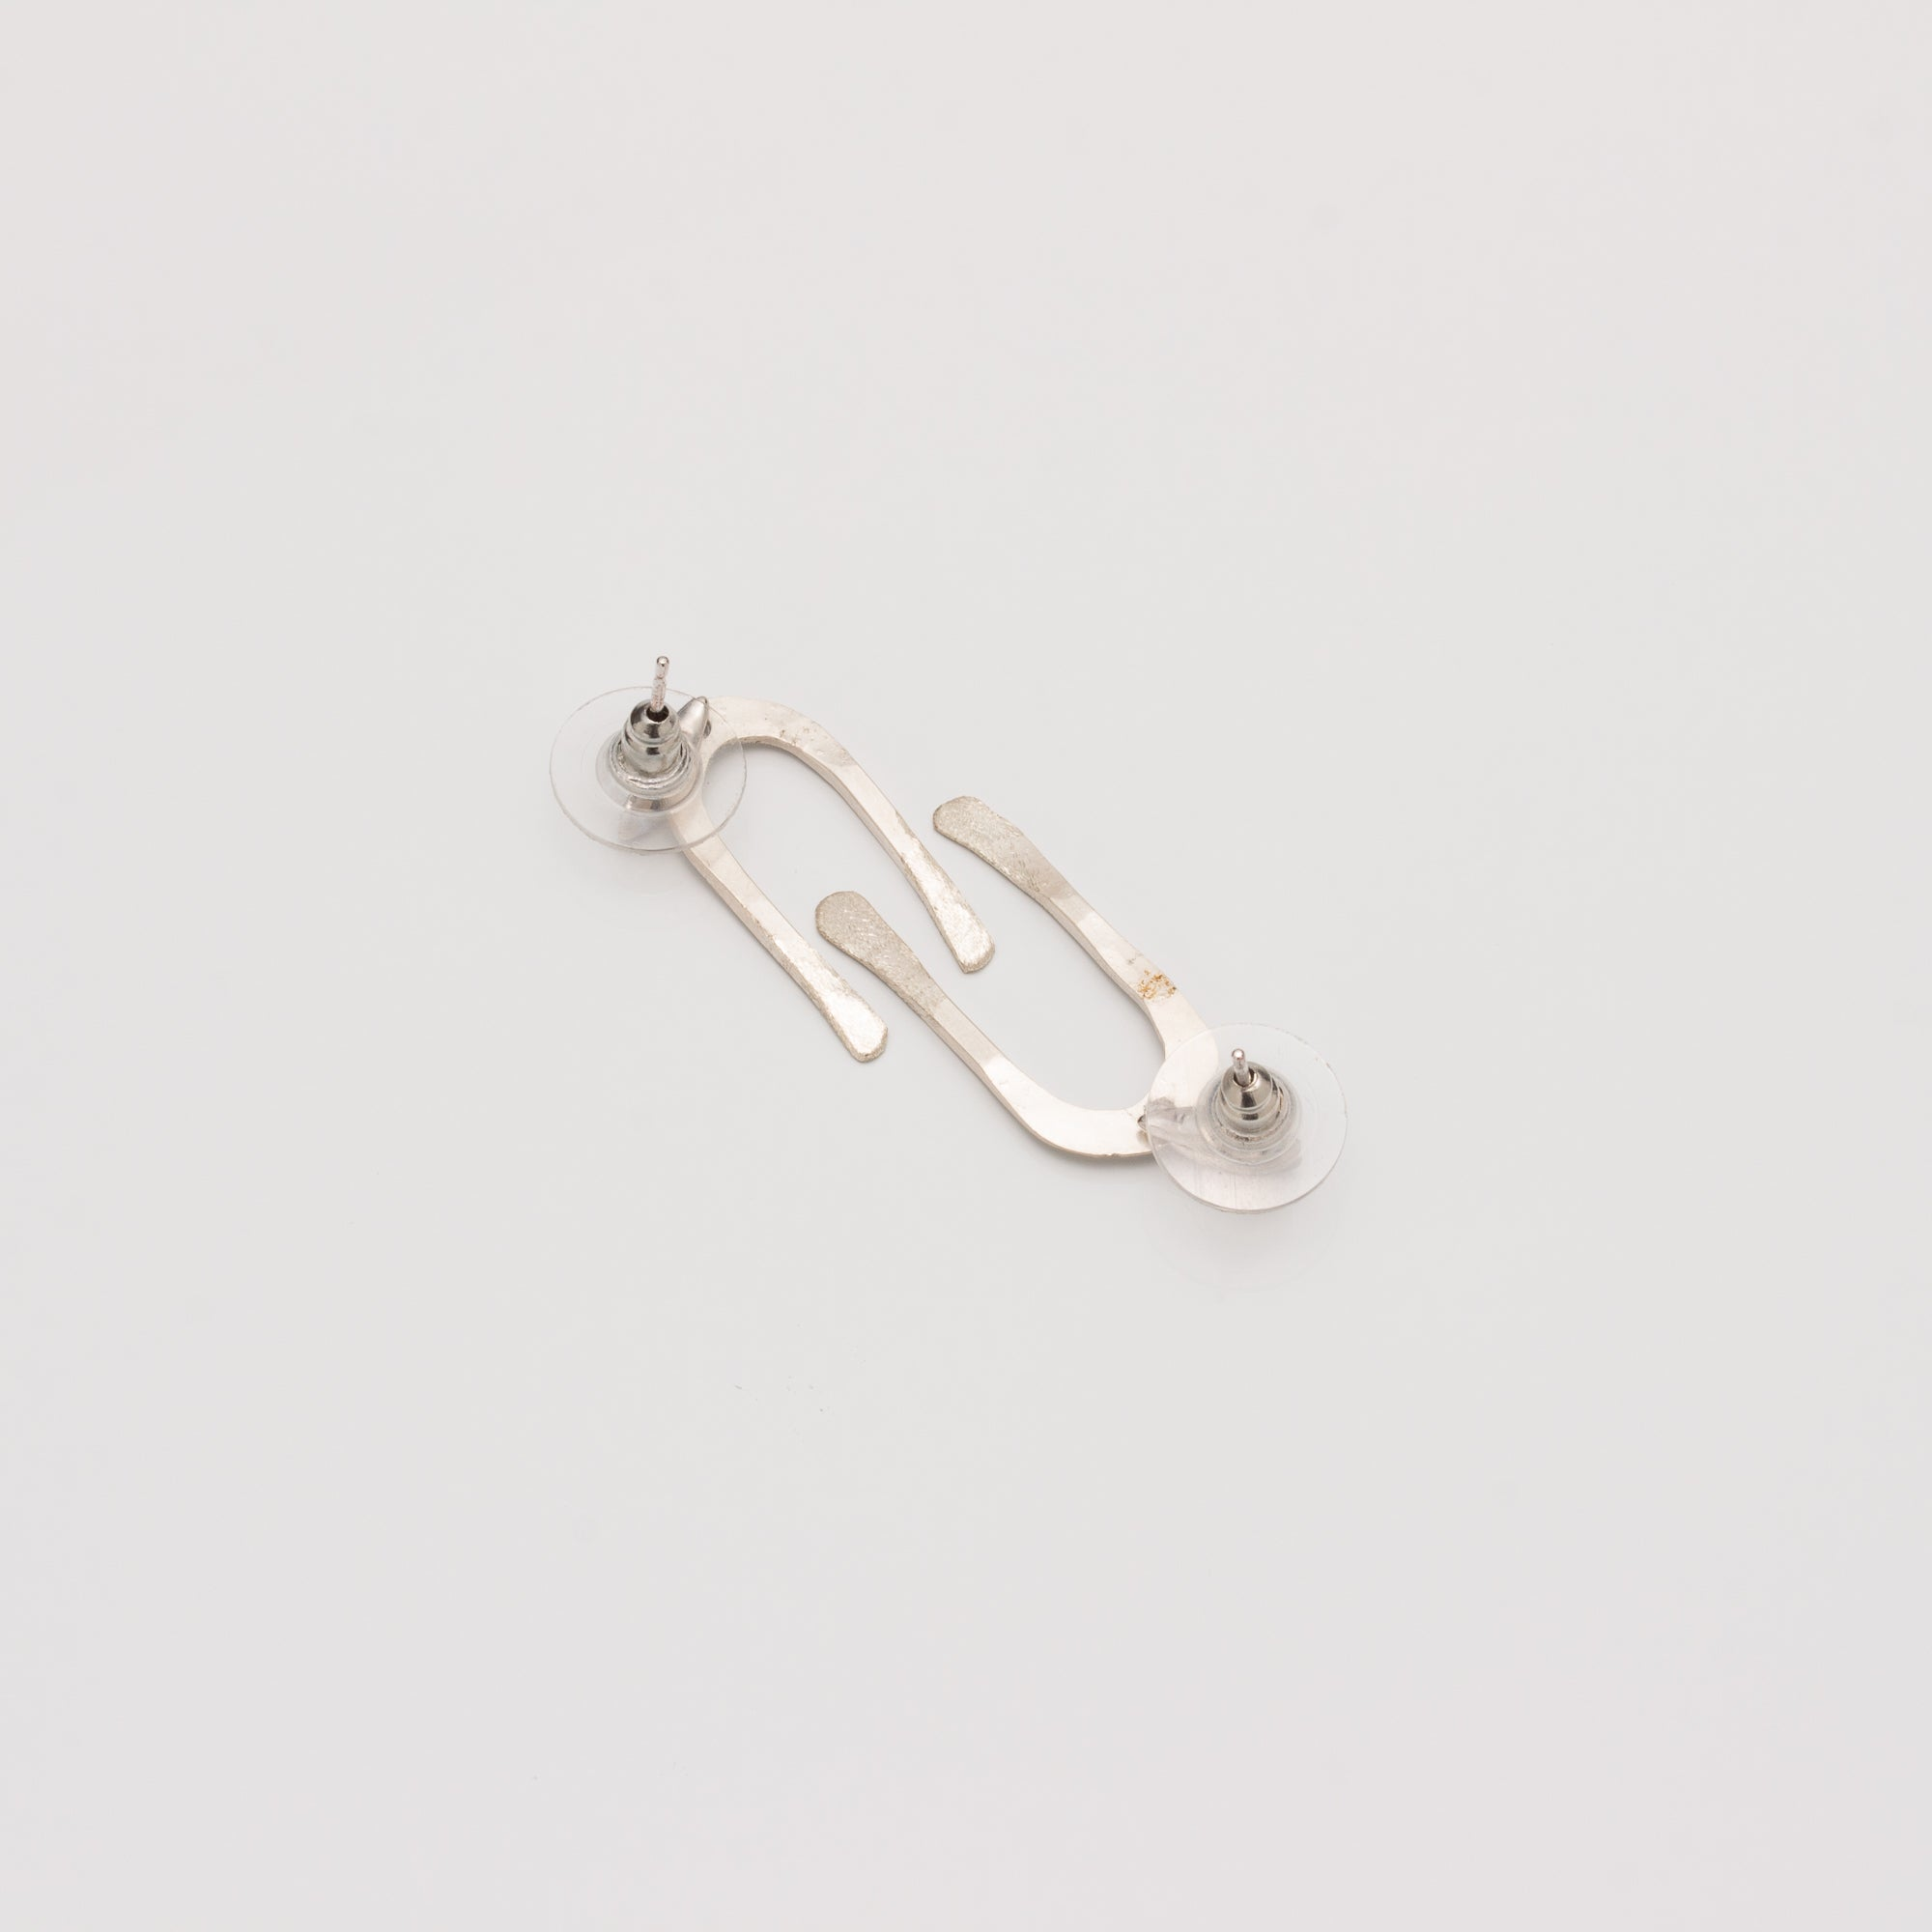 ARCO STERLING SILVER POST EARRINGS // SMALL